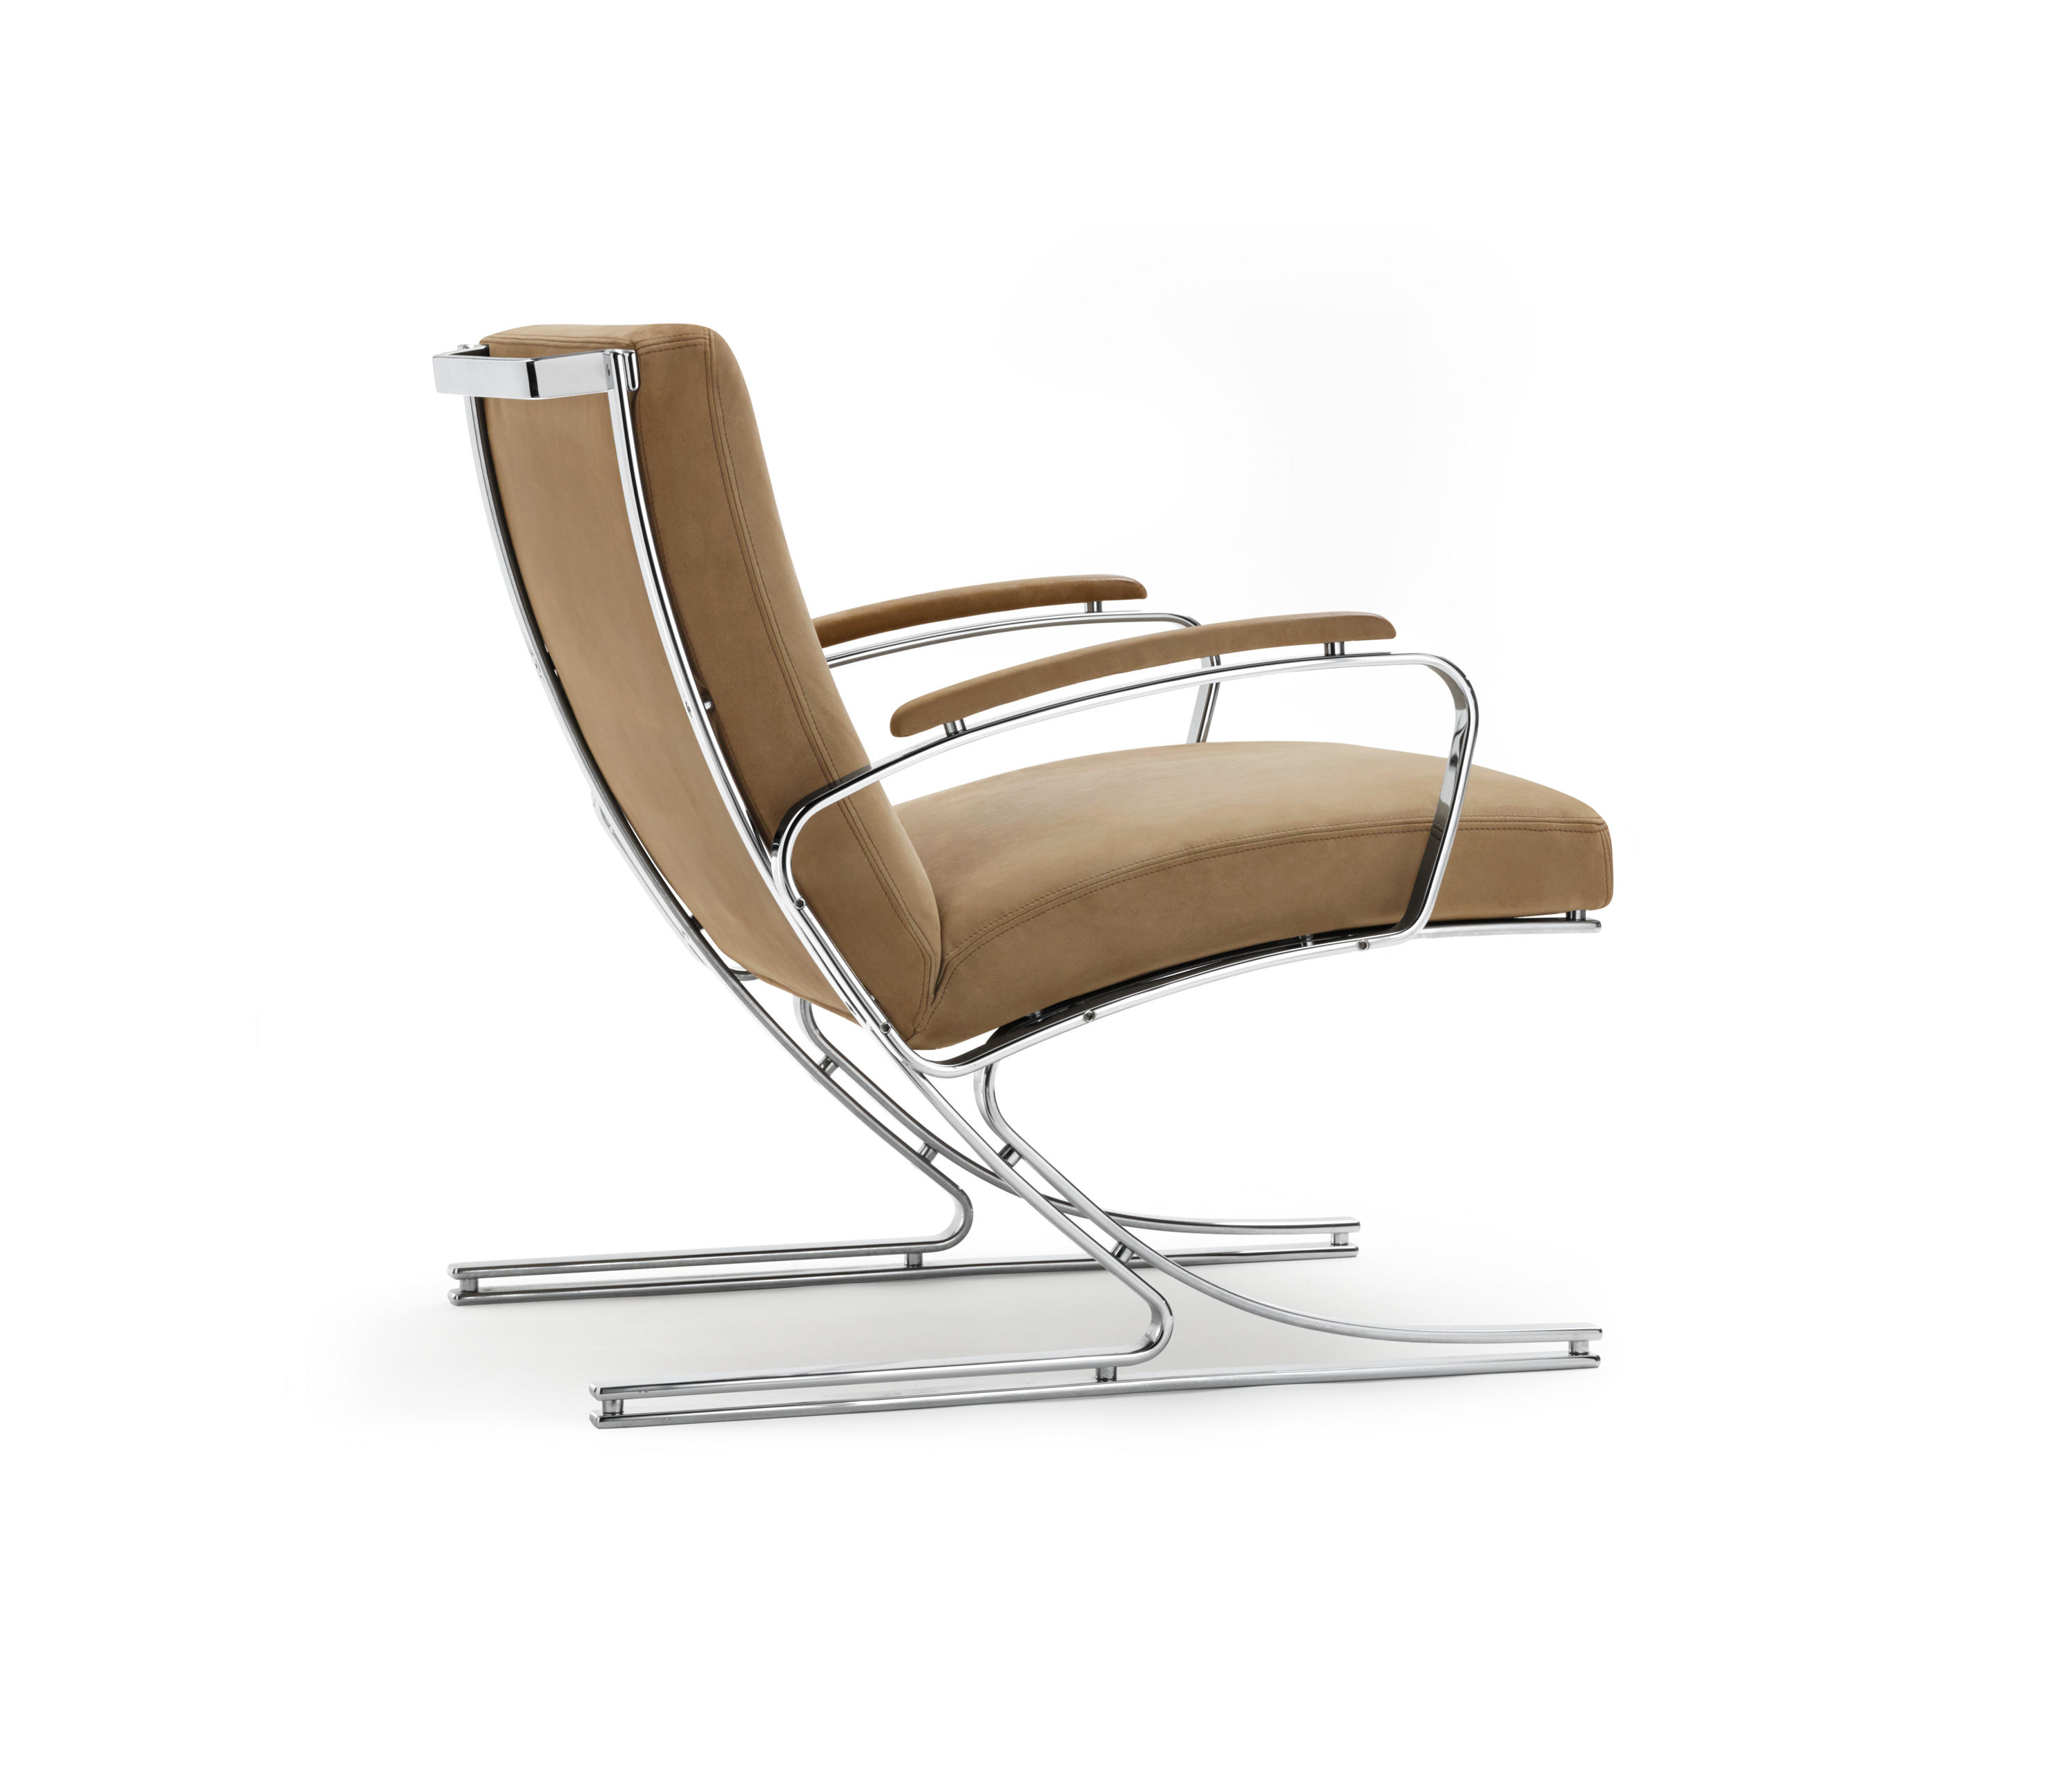 Gorgeous Sessel Berlin Reference Of Chair Von Walter Knoll |